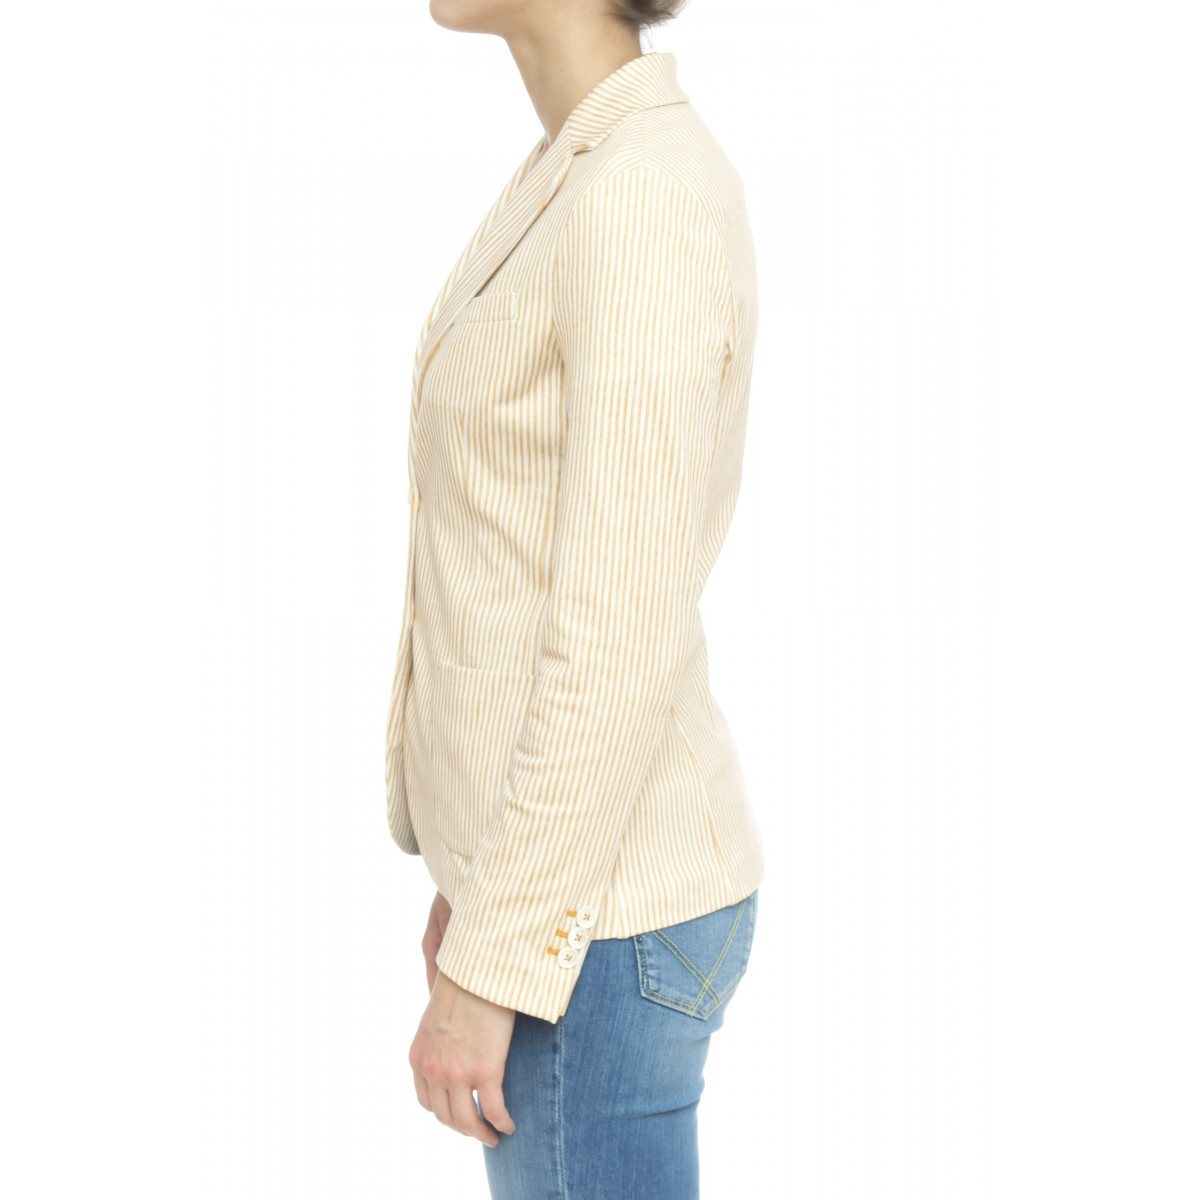 Giacca donna - Fd1556 giacca jersey stampata riga